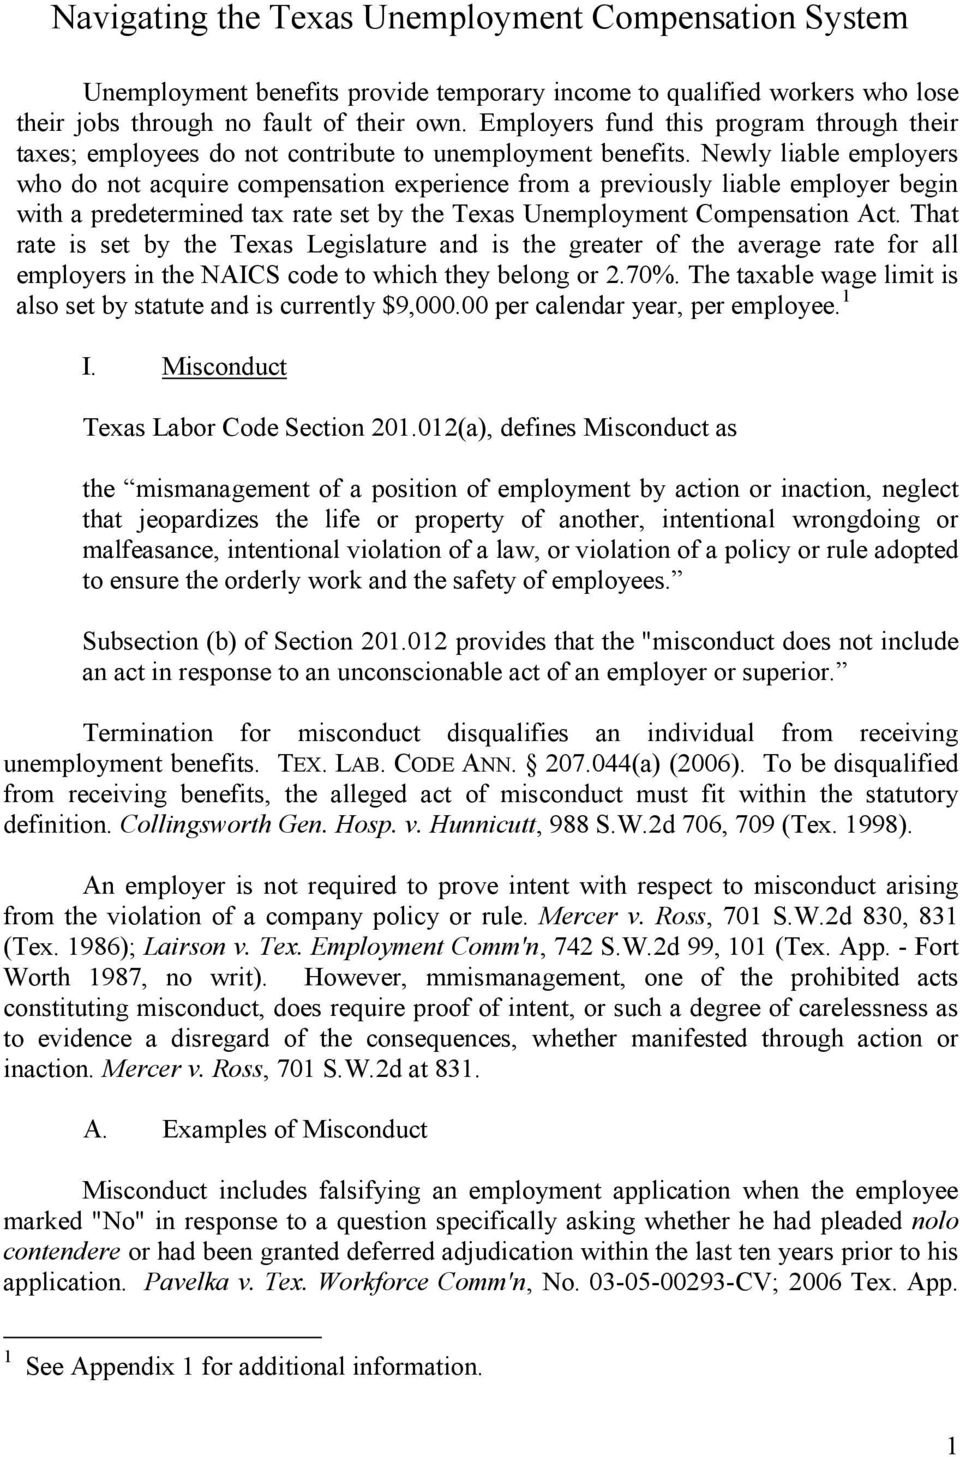 Unemployment Appeal Letter For Misconduct from docplayer.net